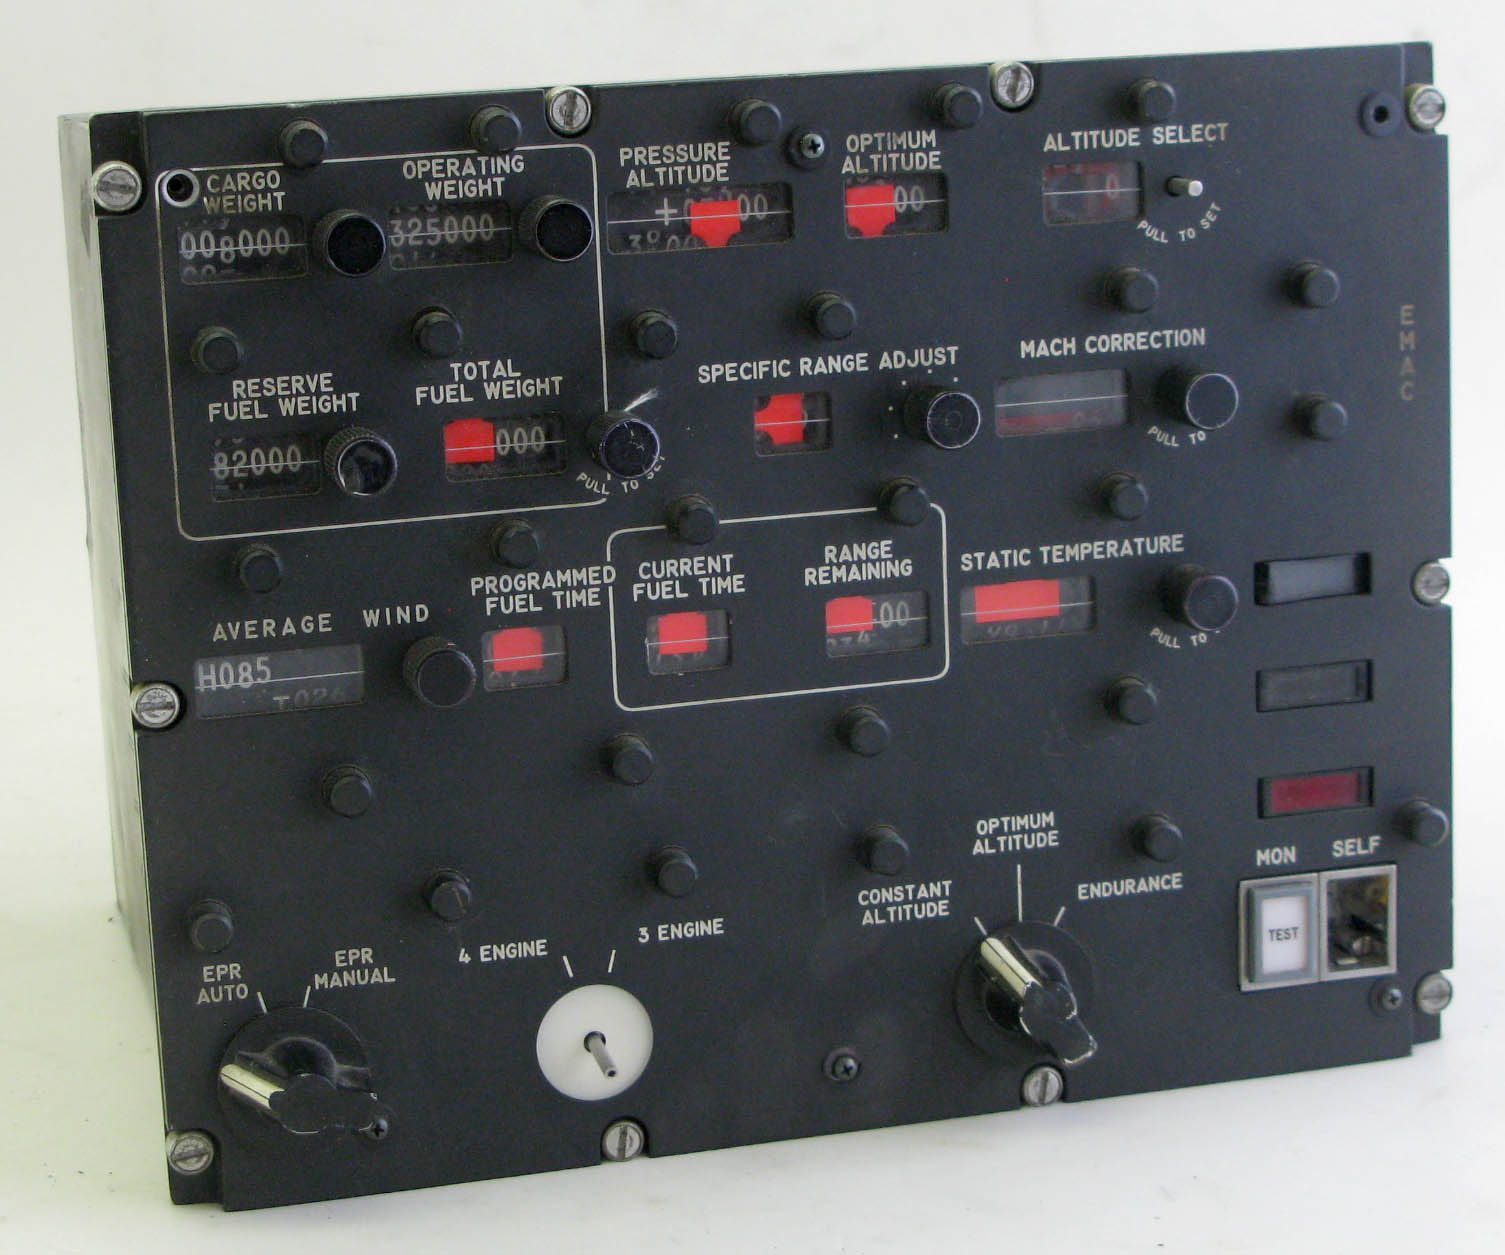 Energy Management Analog Computer (EMAC)